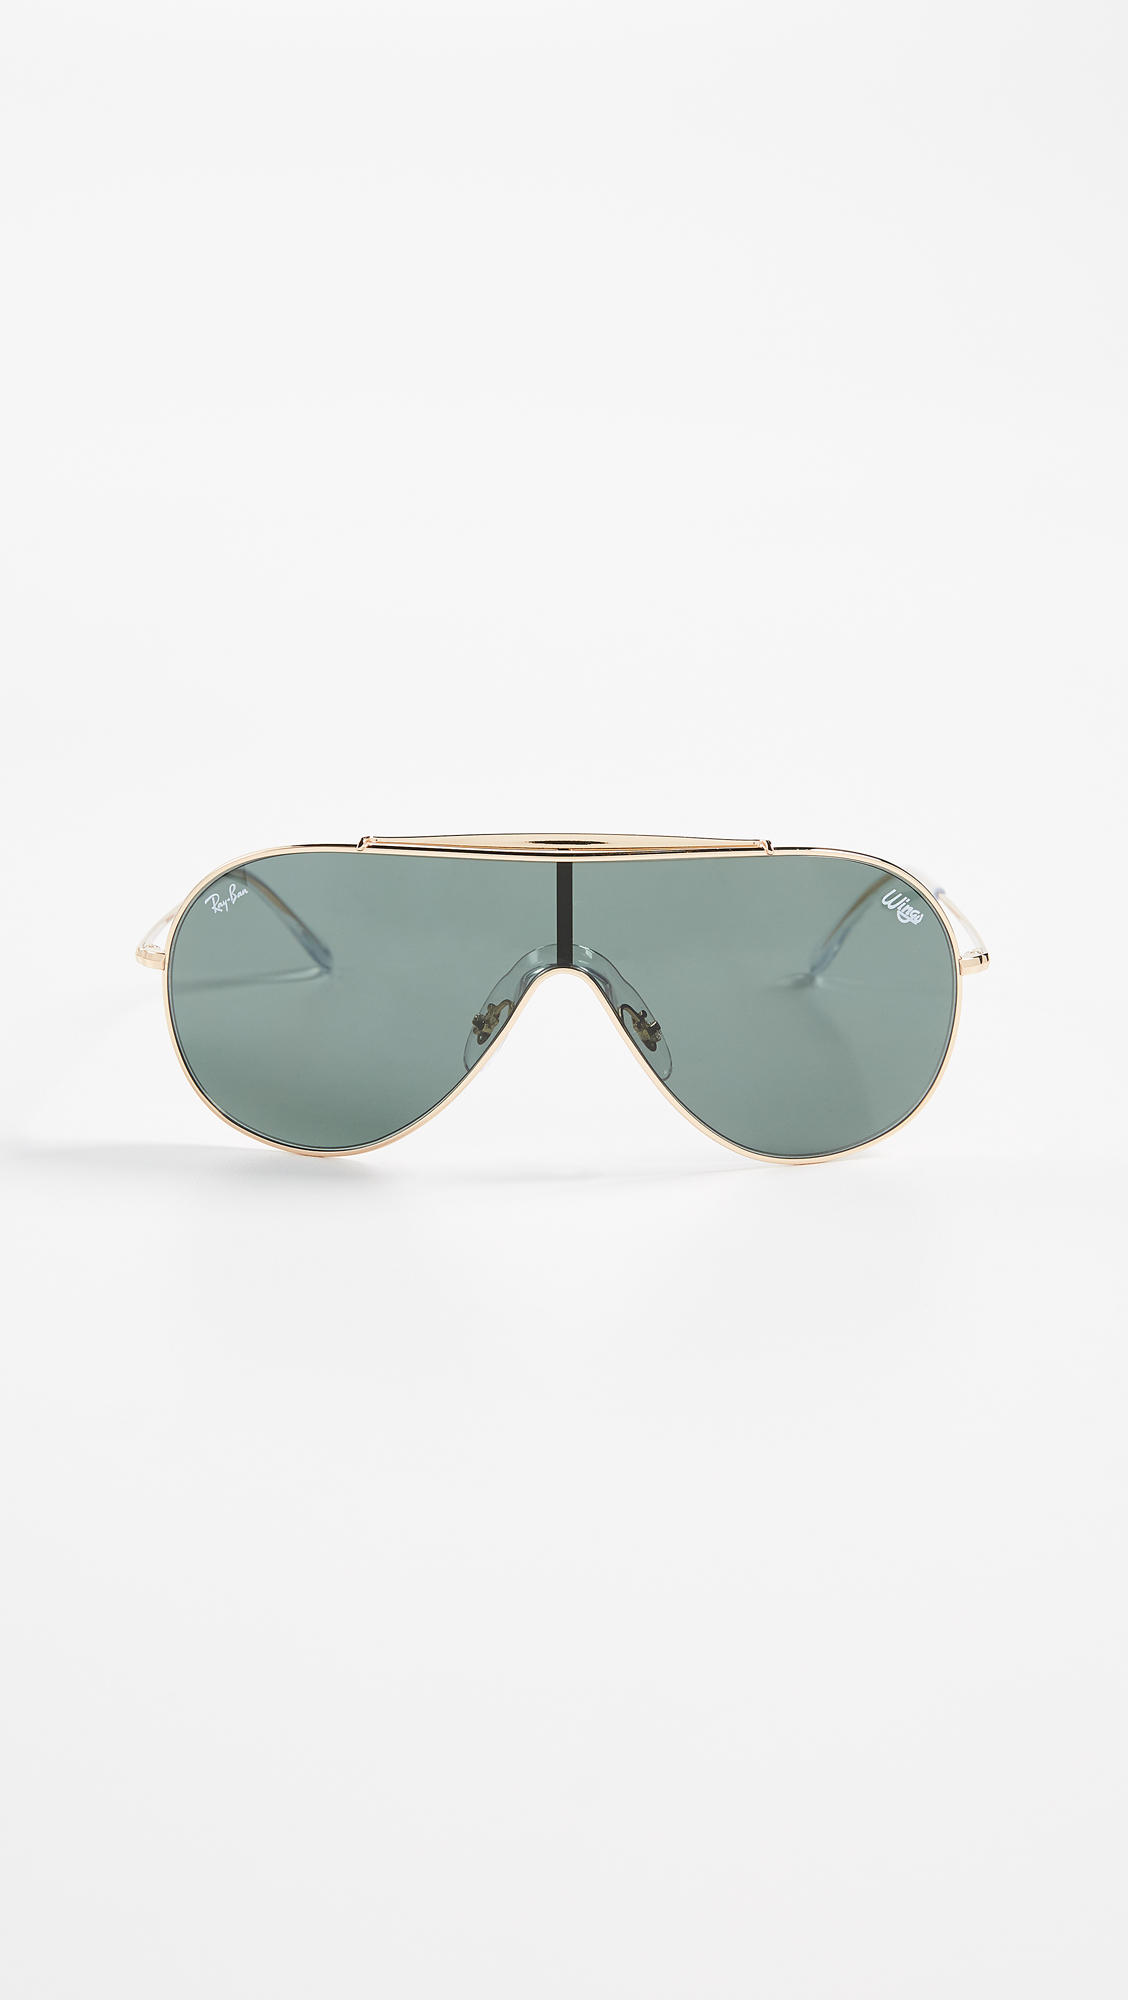 0ef85f416d Ray-Ban Oversized Shield Sunglasses